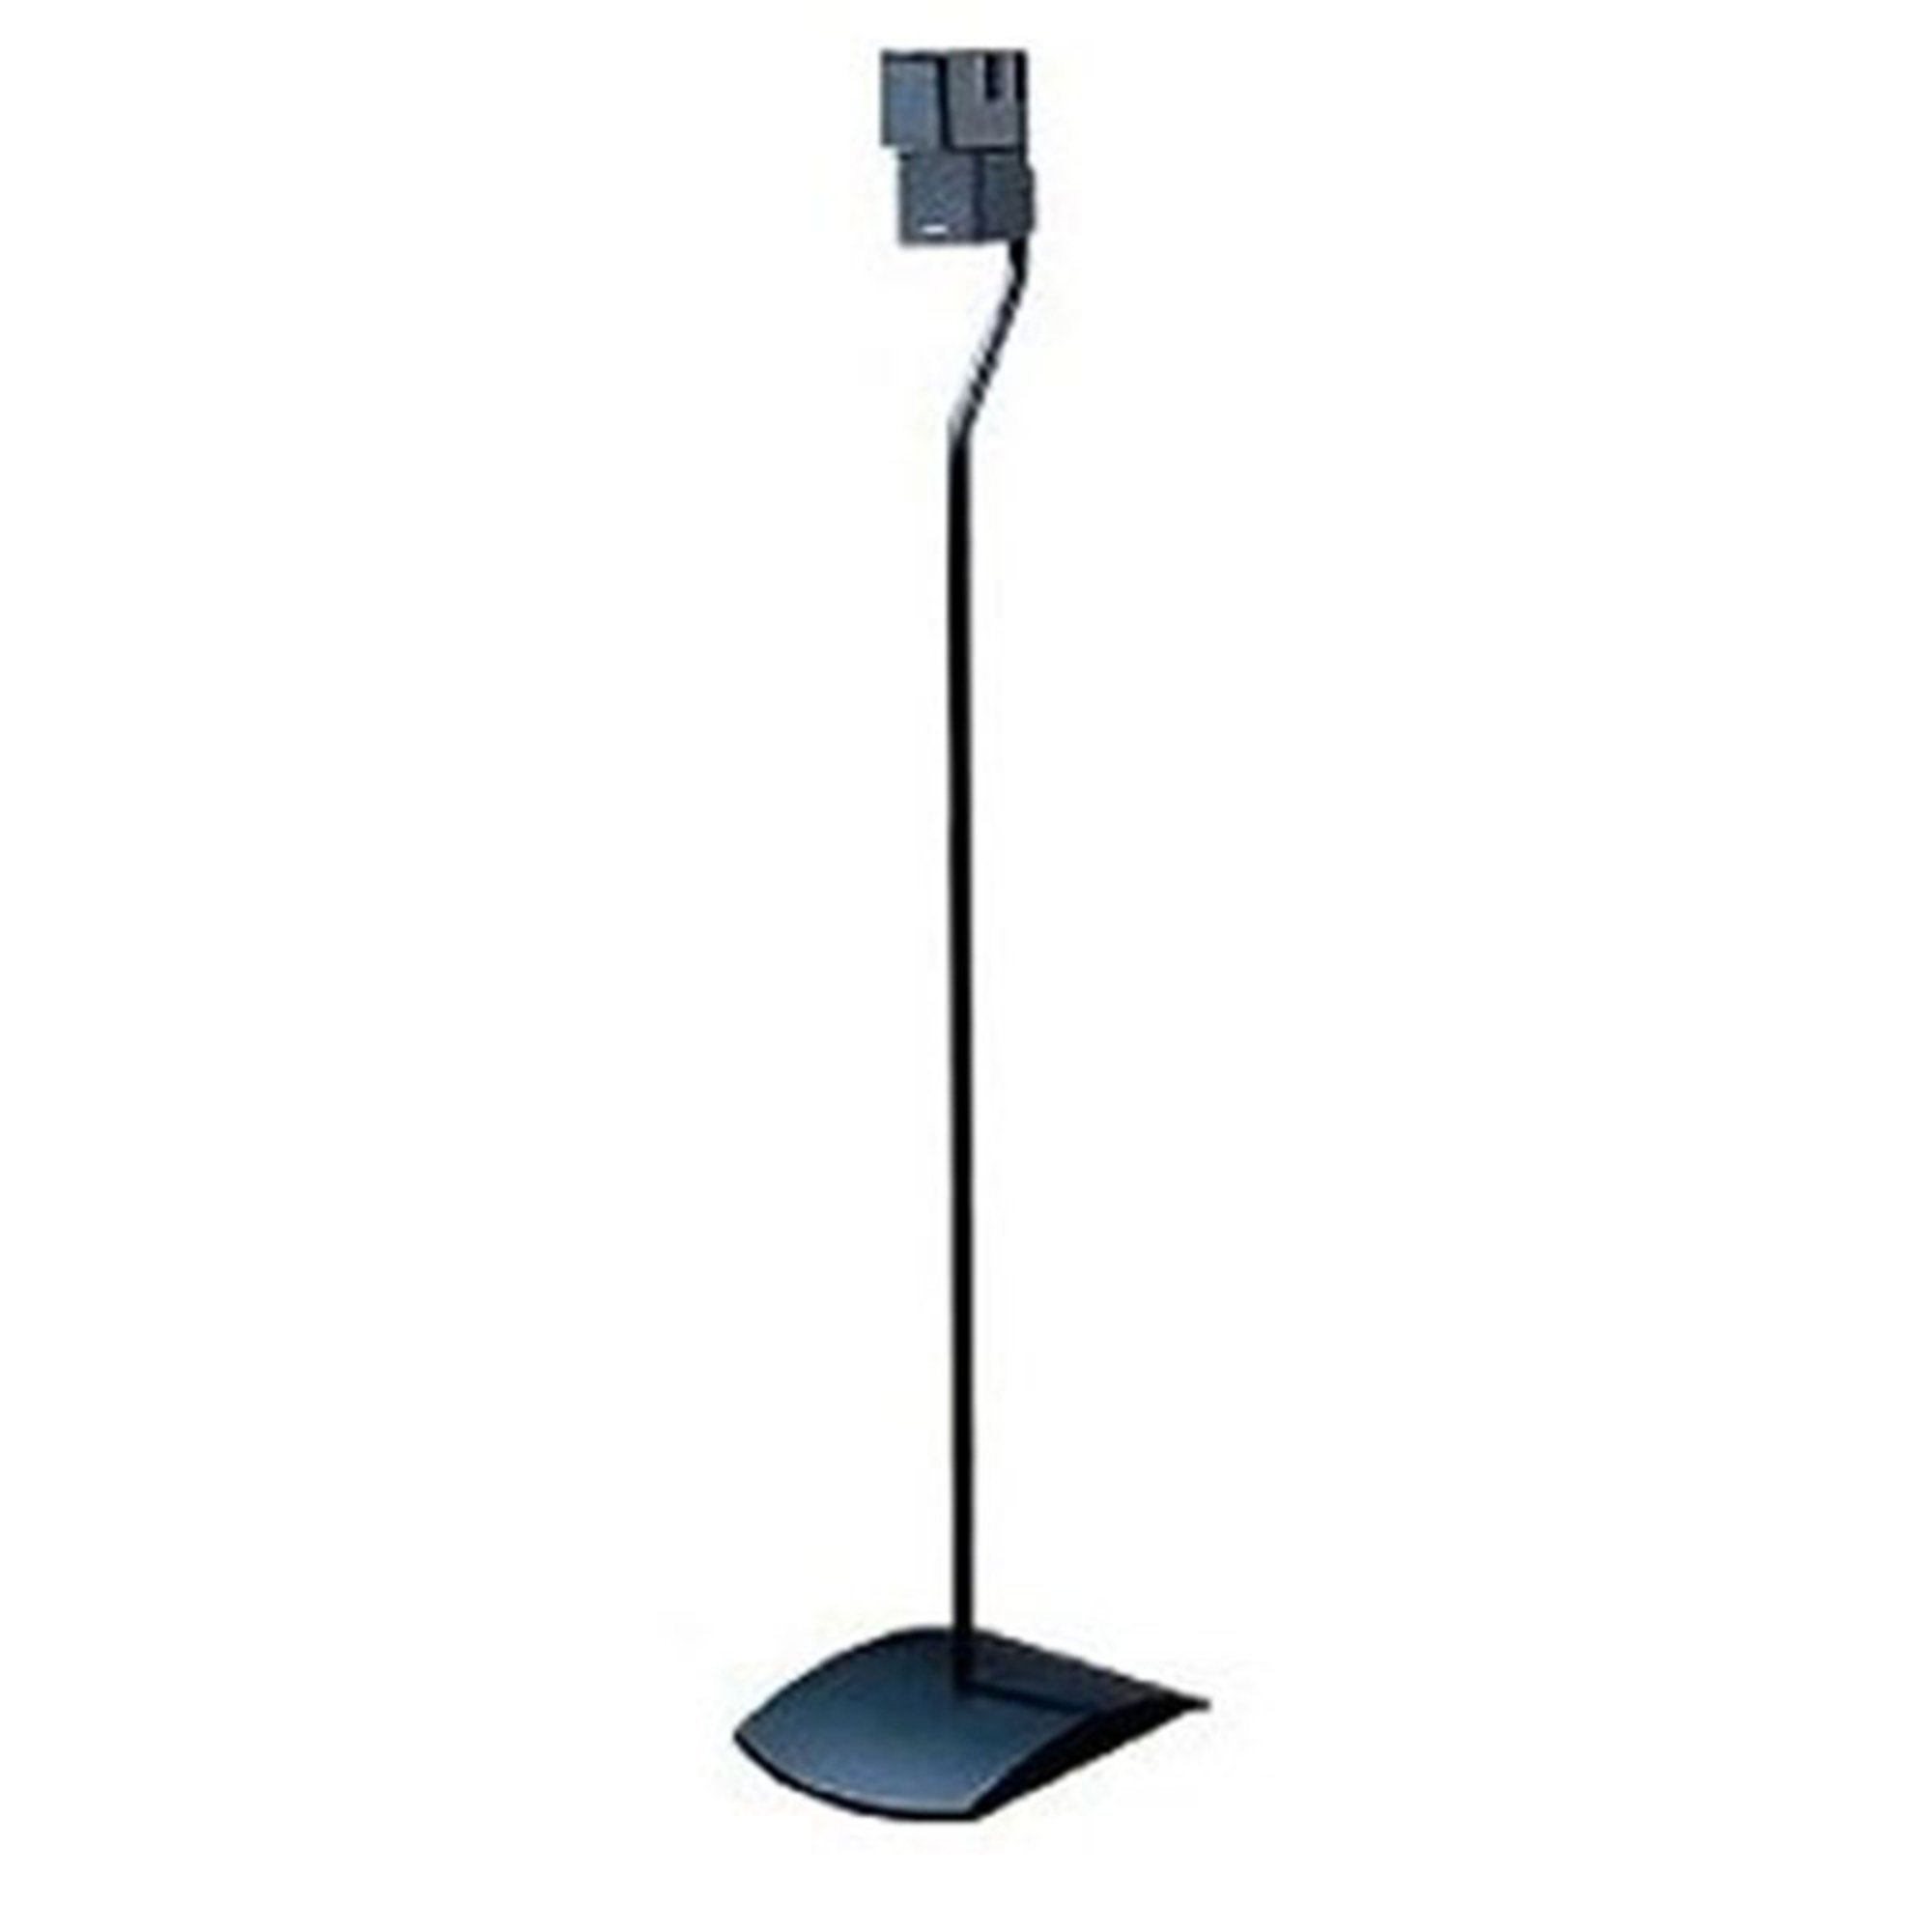 bose ufs 20 series ii universal floor speaker stands. Black Bedroom Furniture Sets. Home Design Ideas